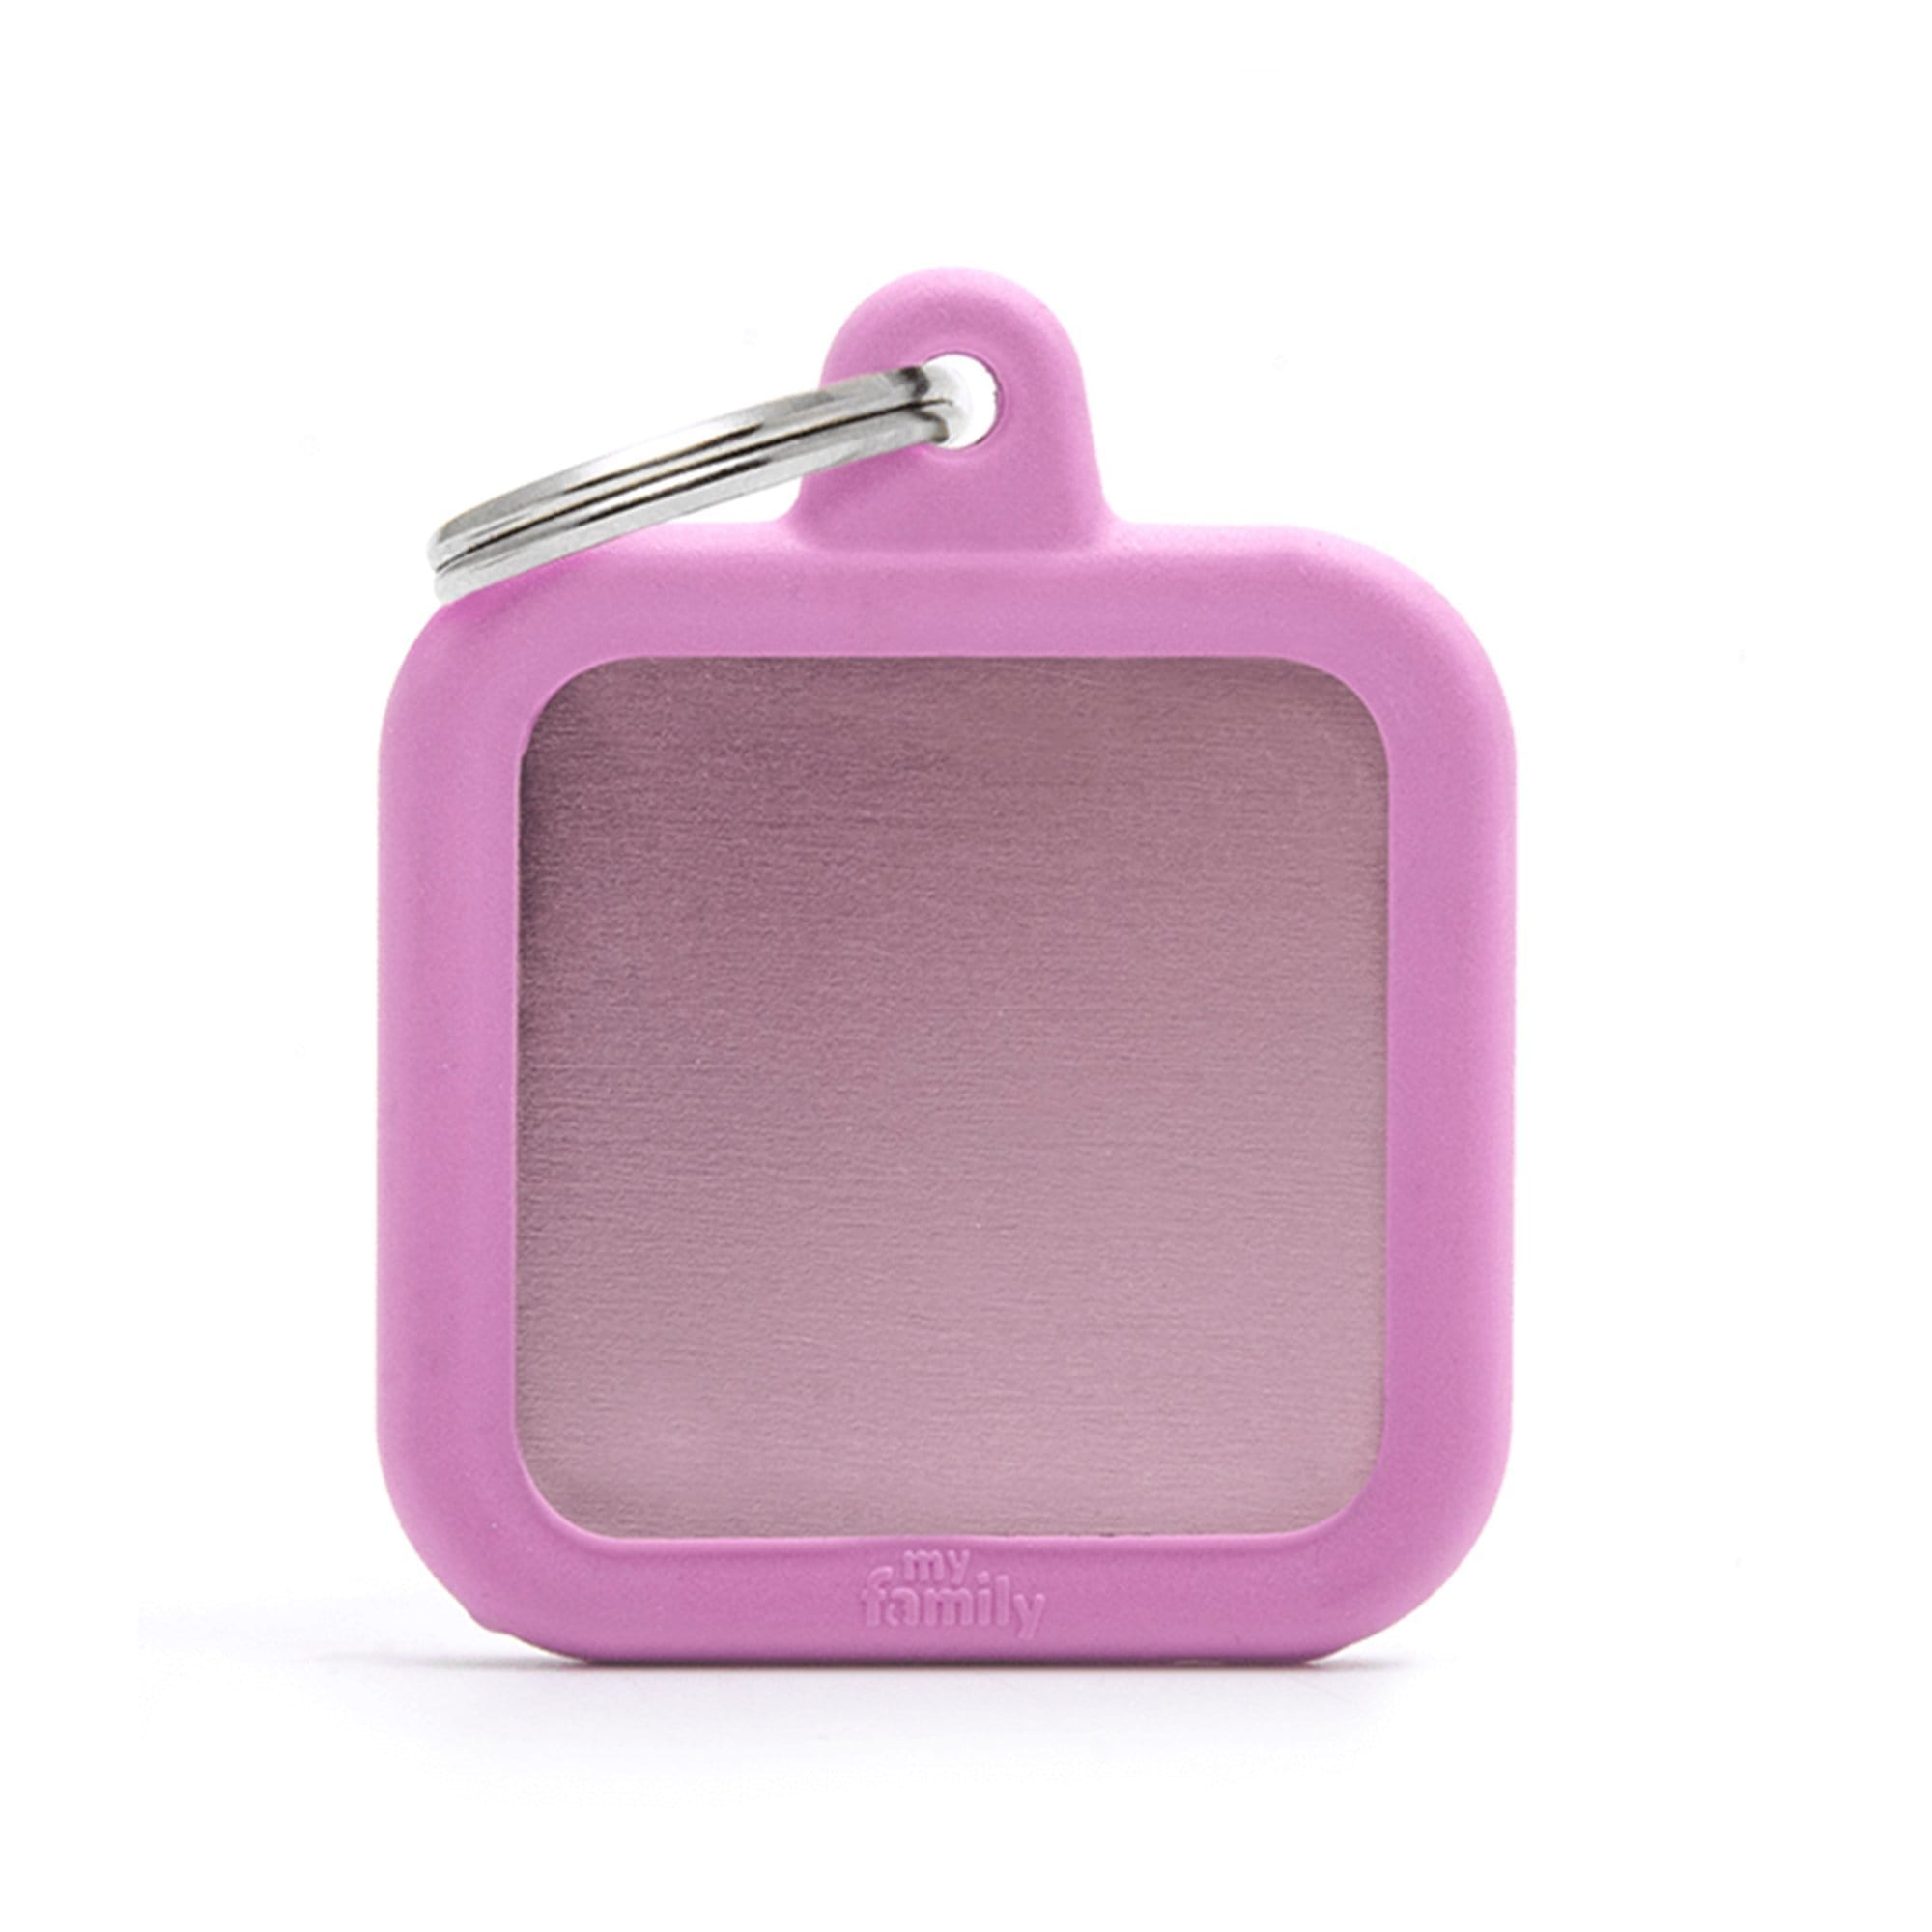 My Family Aluminium Pink Square With Rubber Dog I.D. Tags 3F3B